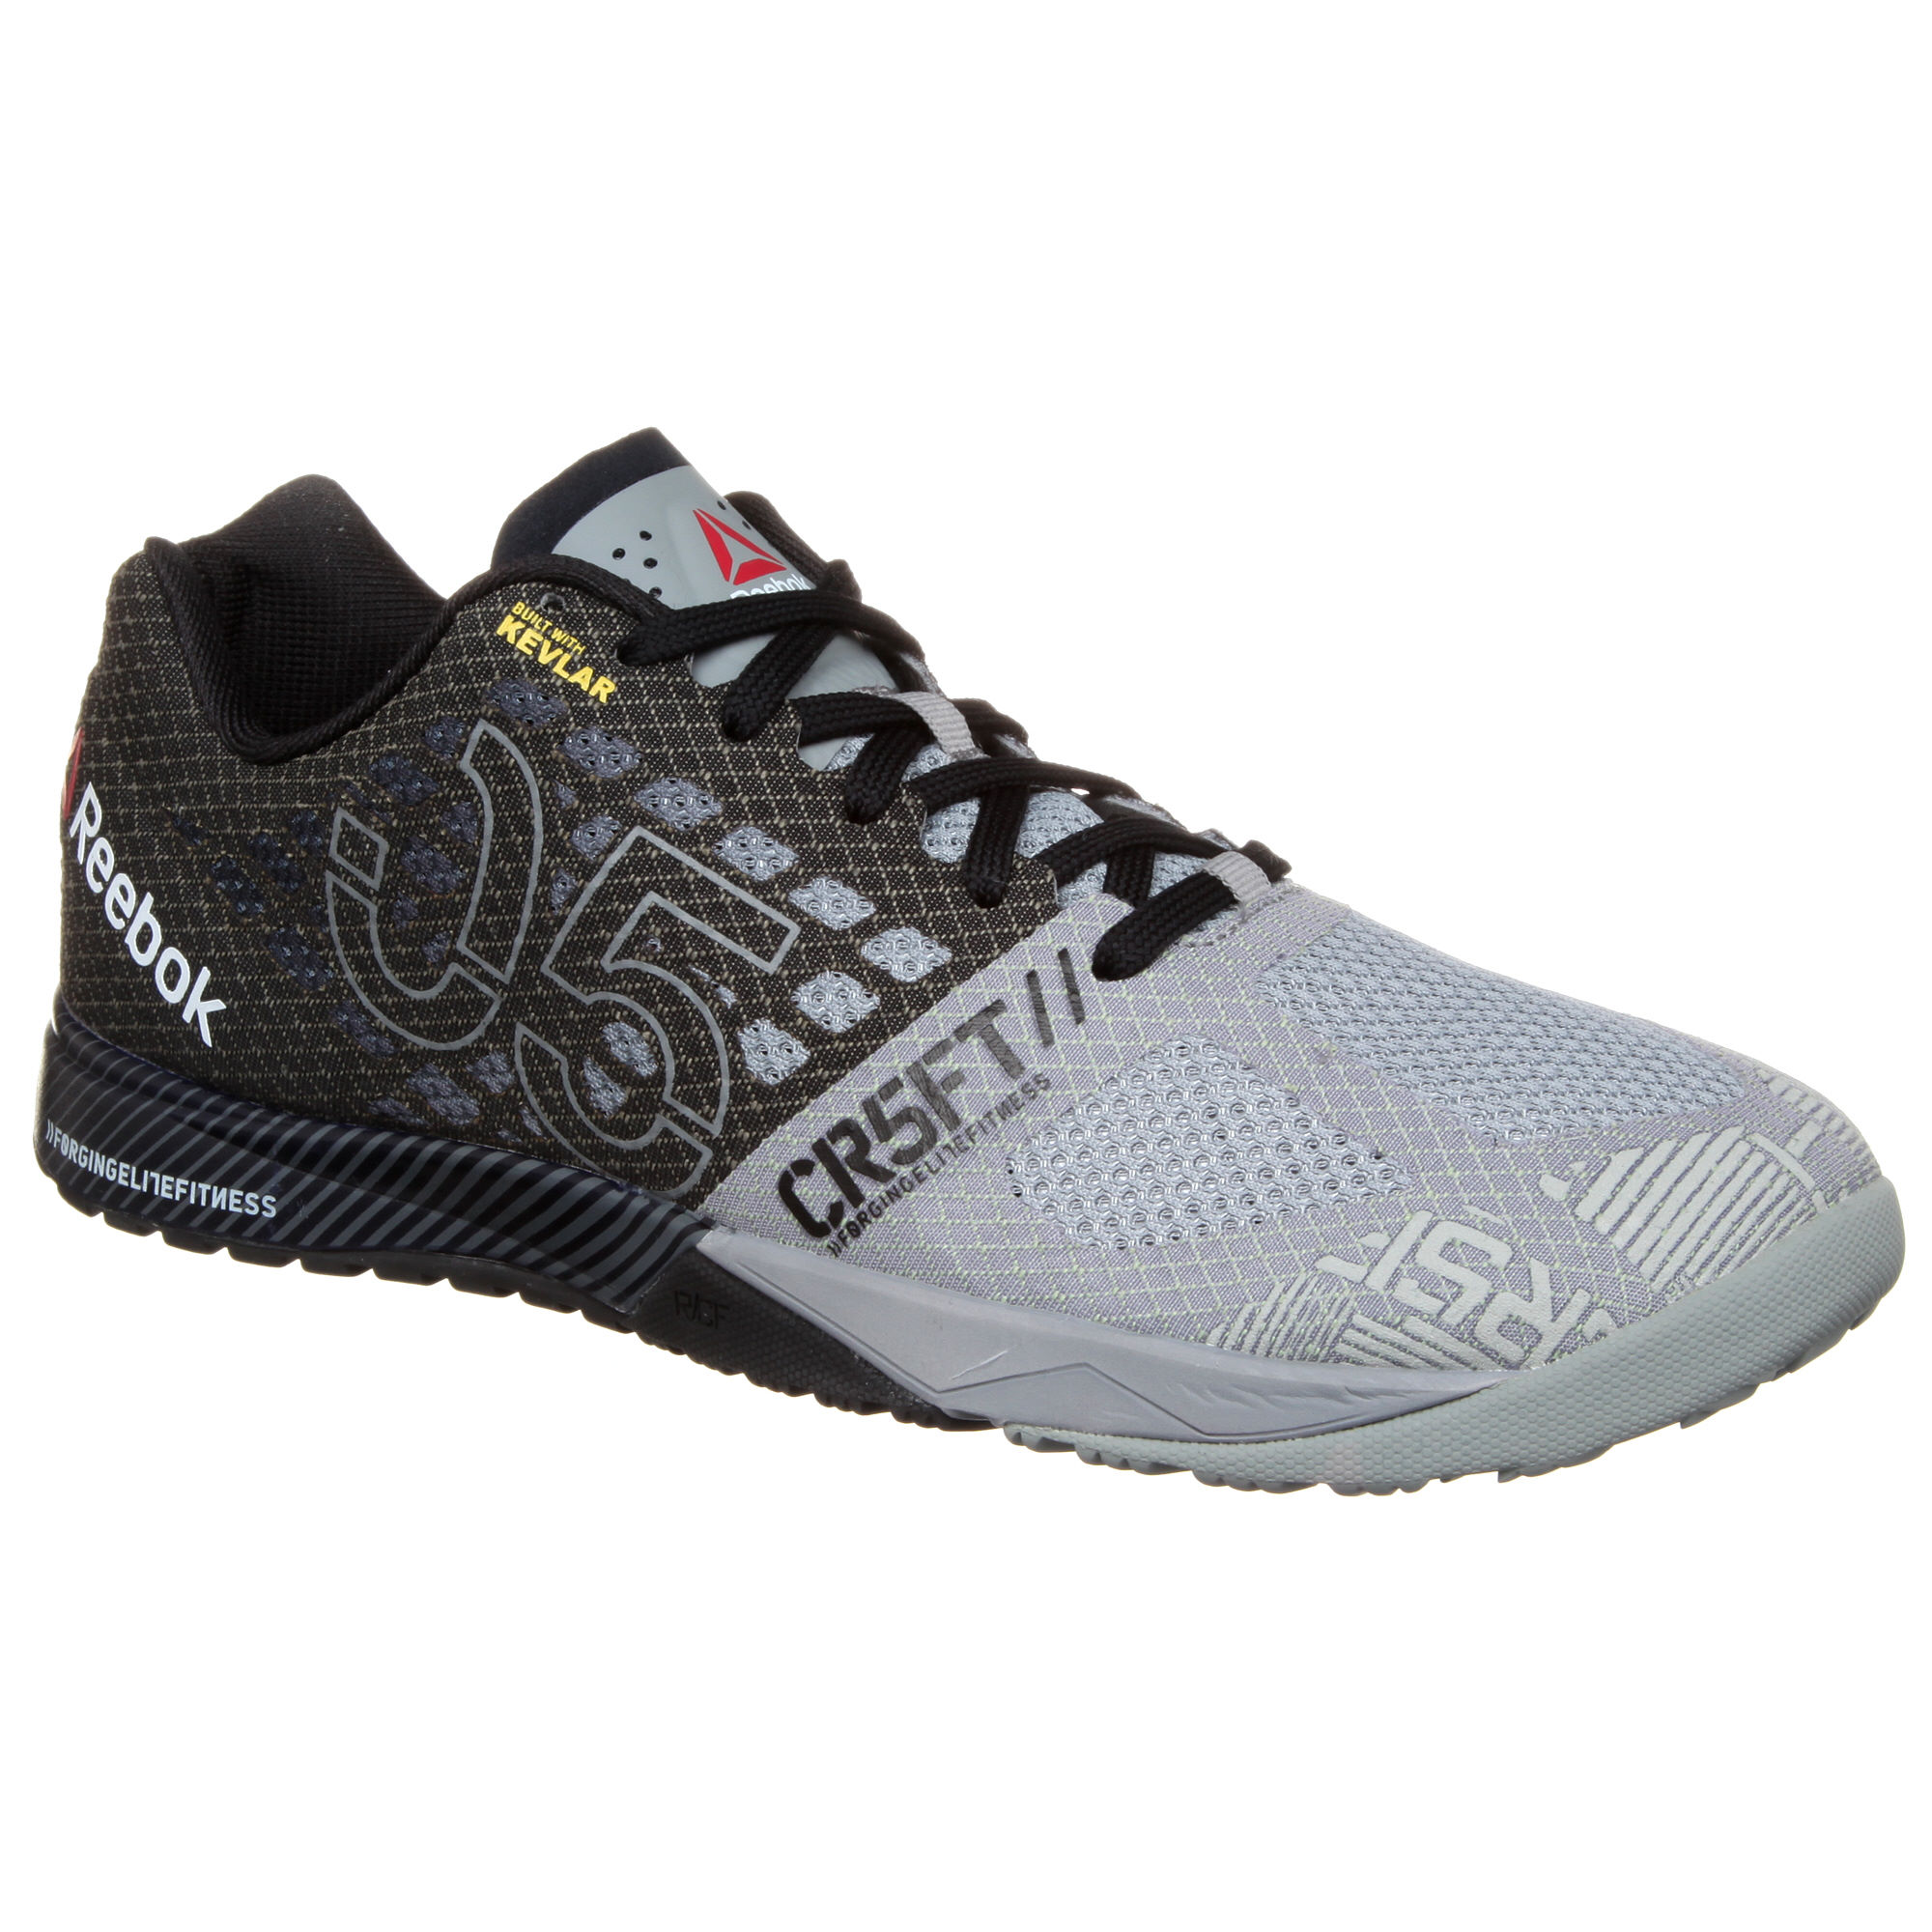 reebok crossfit nano 5 0 shoes aw15 training running shoes. Black Bedroom Furniture Sets. Home Design Ideas